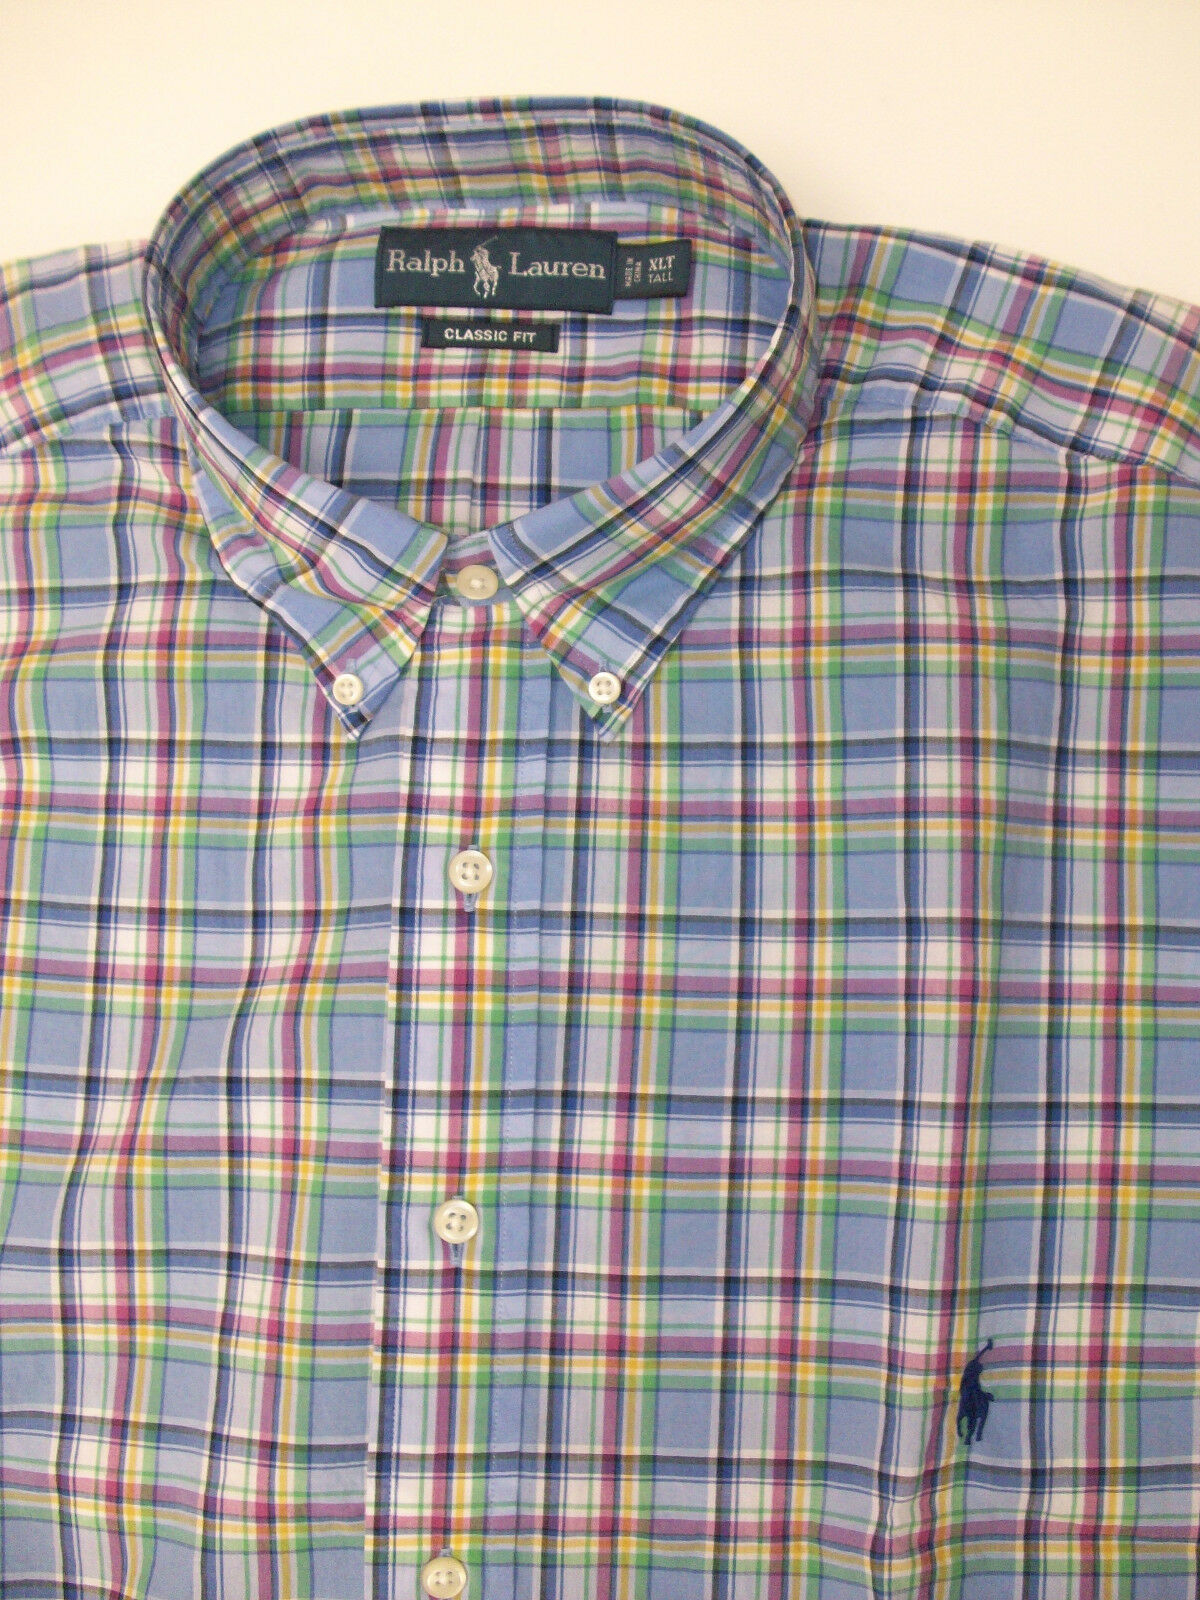 Polo Ralph Lauren LS Classic Fit Plaid Poplin Shirt -98 Purple bluee  Pony NWT